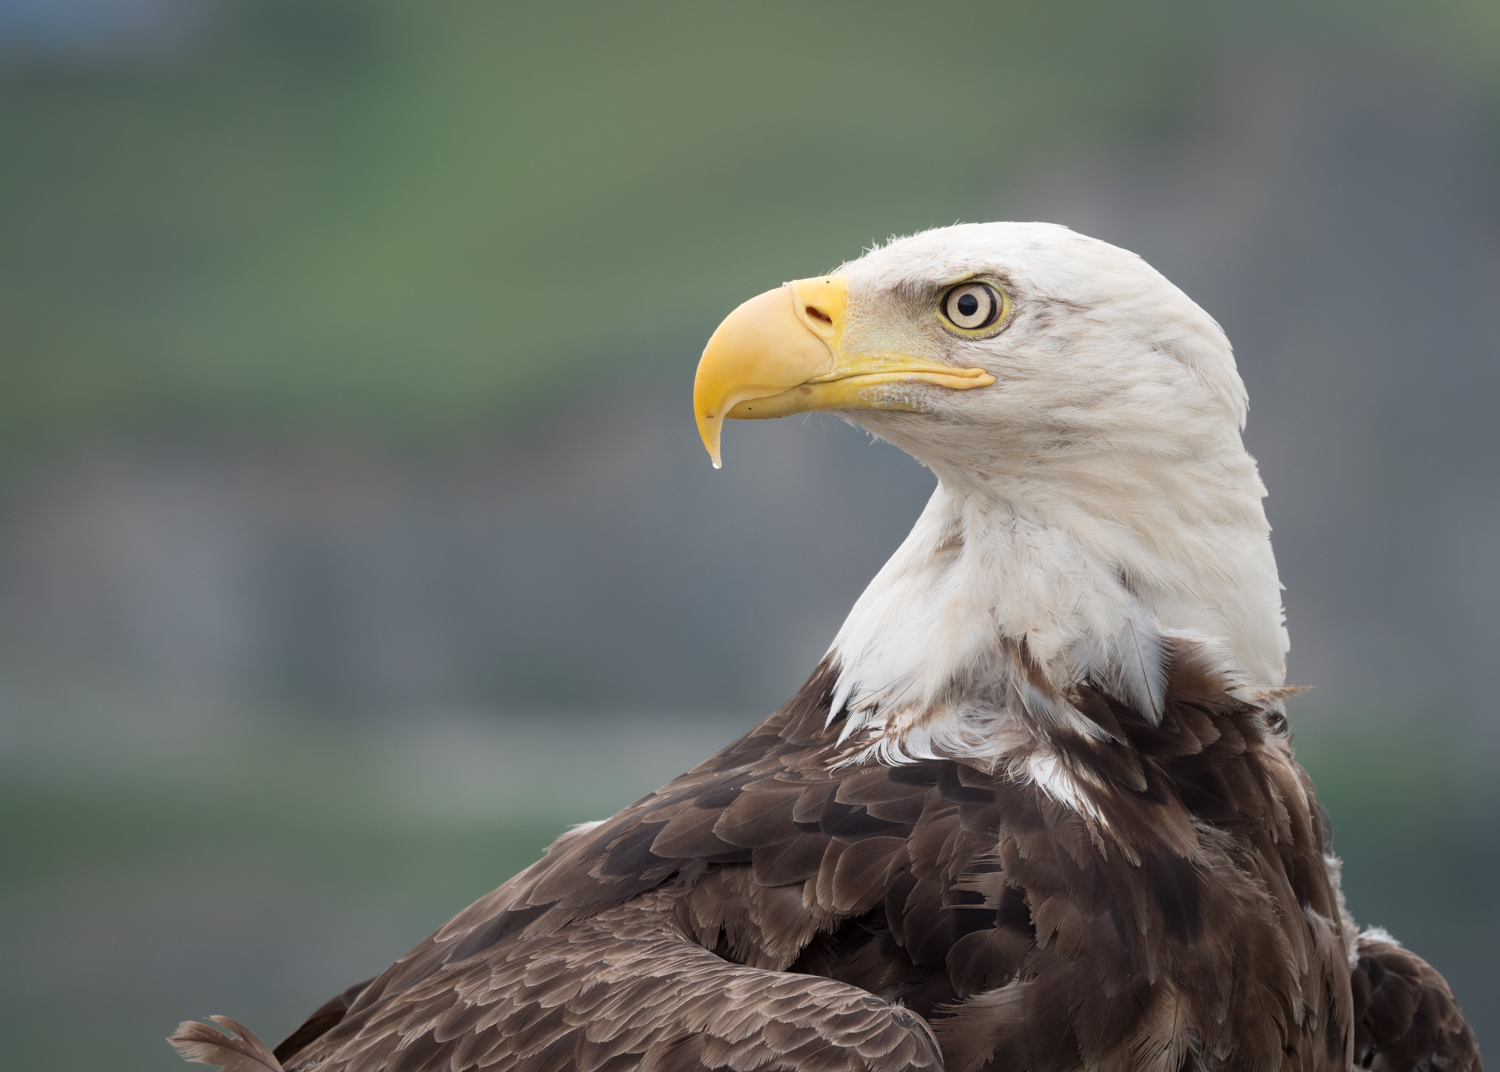 Review of the Olympus 300mm F4 PRO Lens - bald eagle